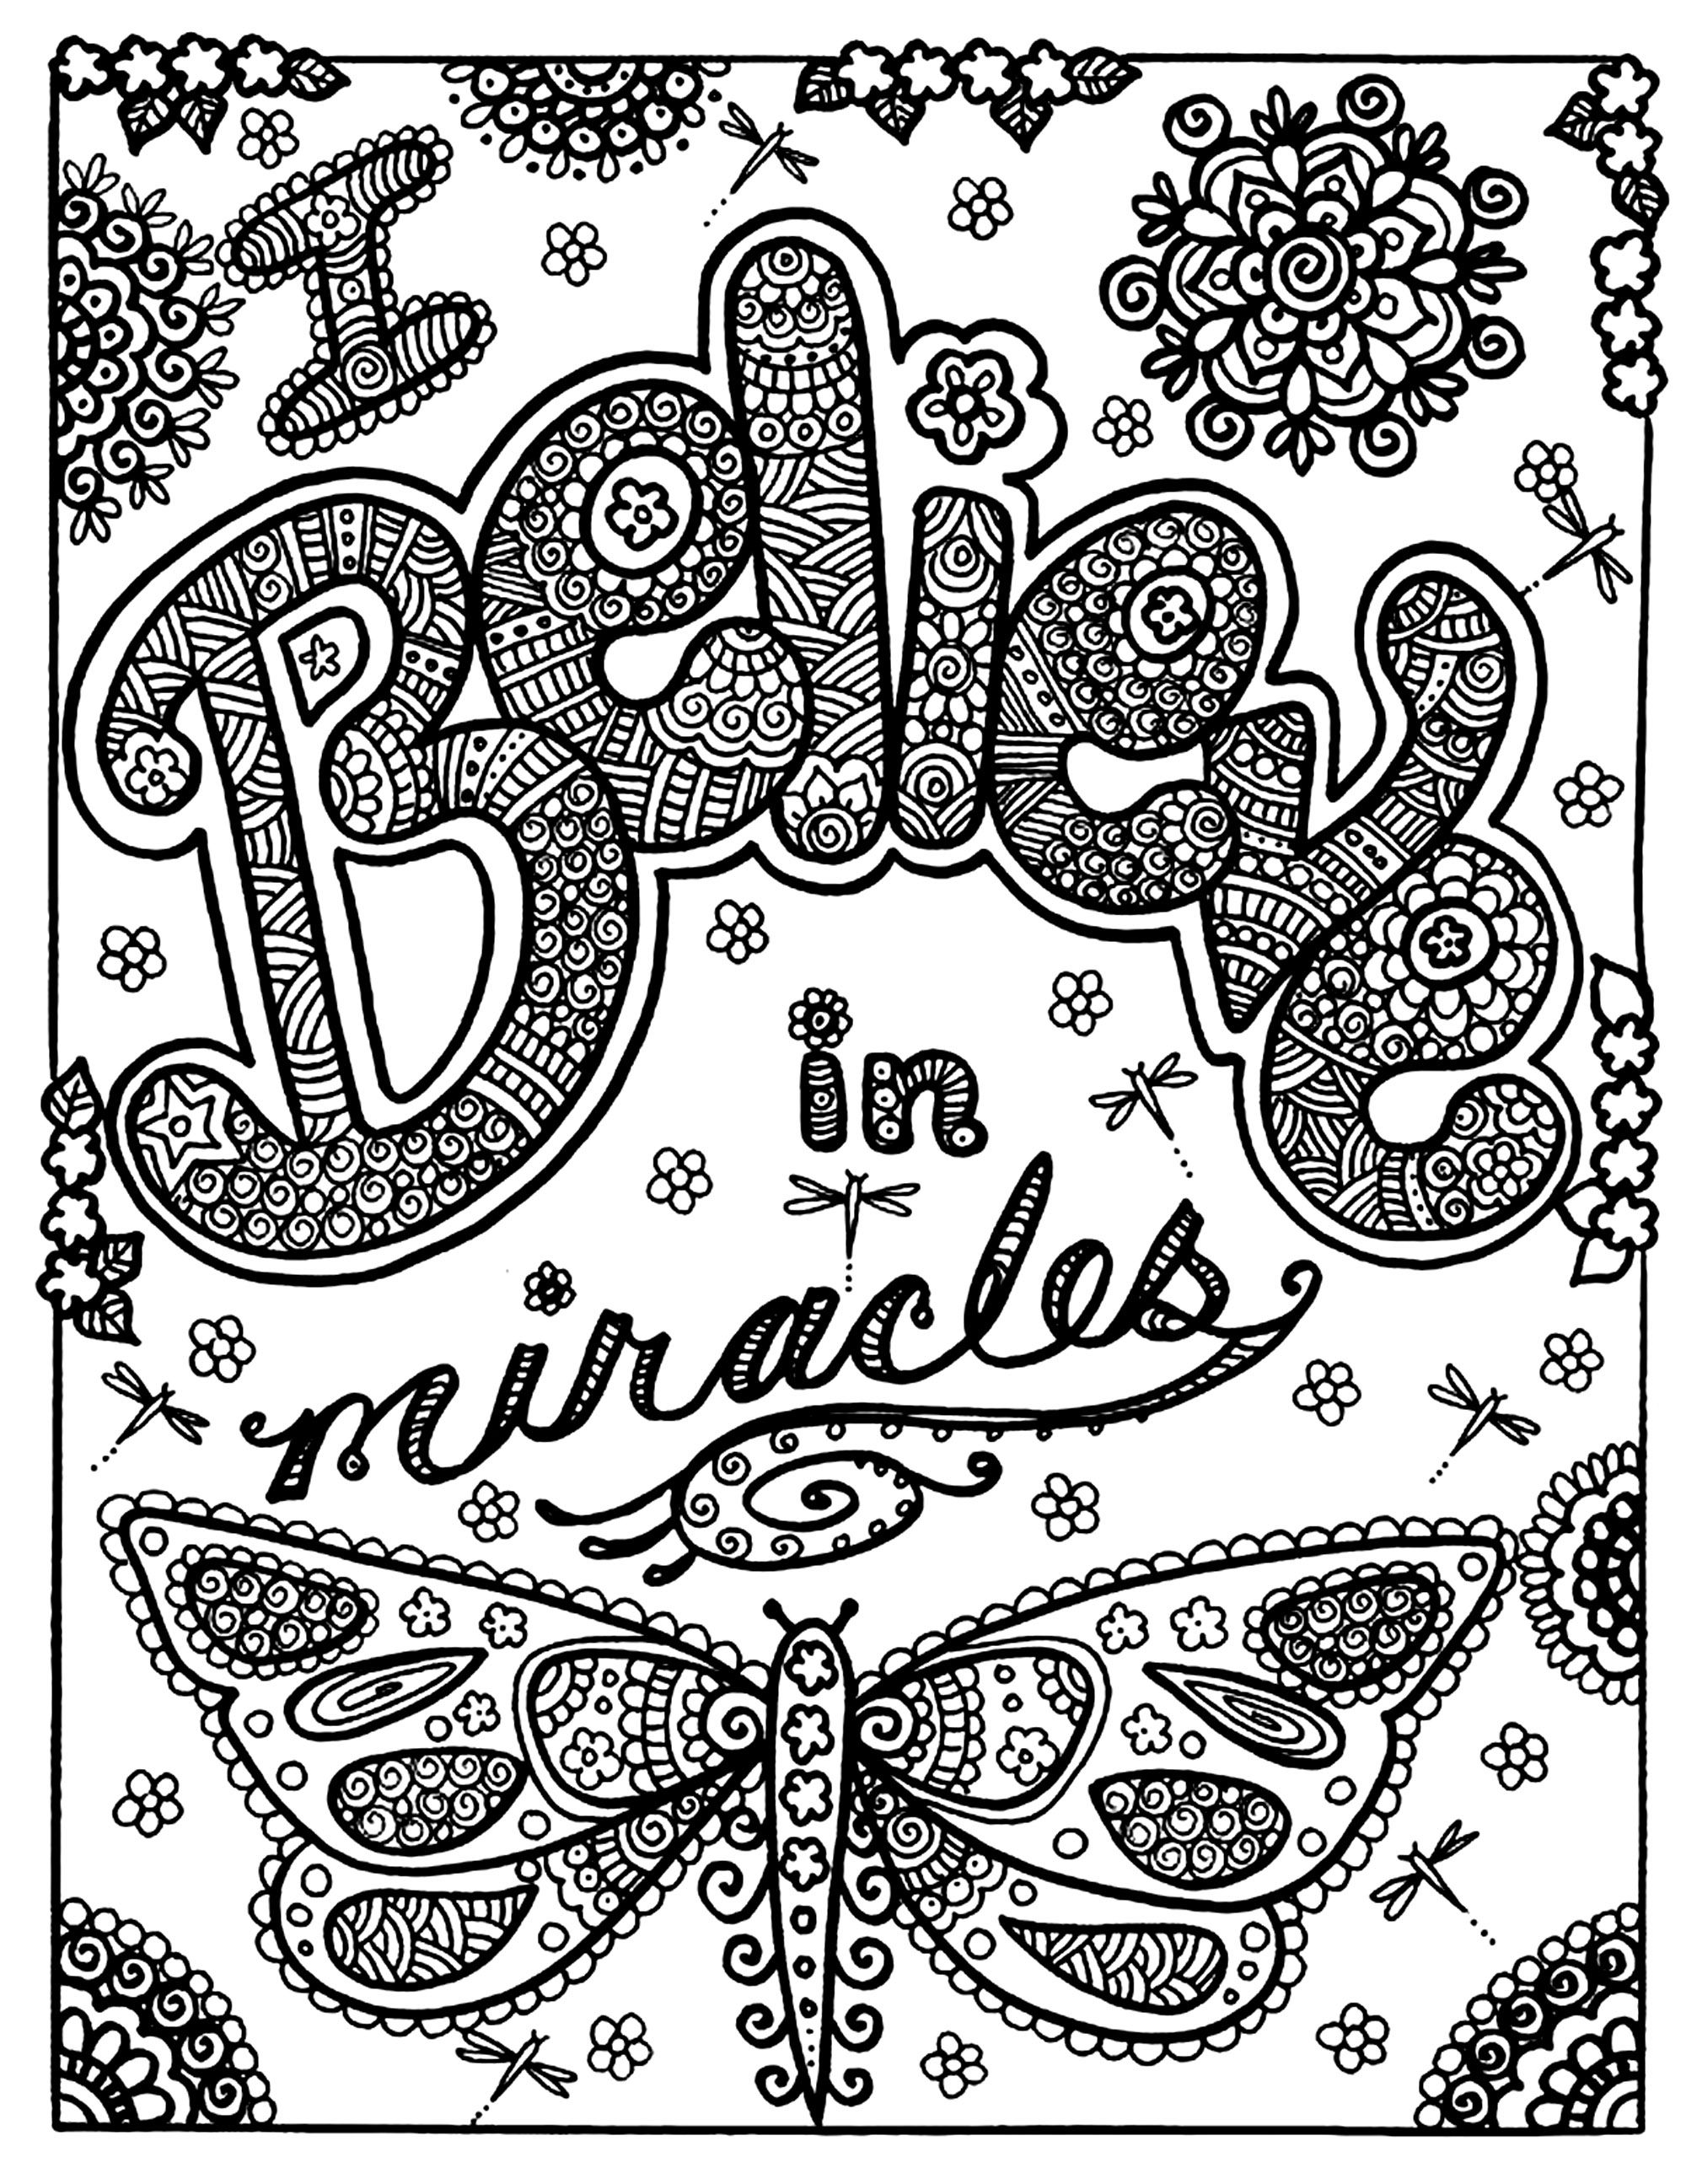 To print this free coloring page coloring adult butterfly miracle click on the printer icon at the right